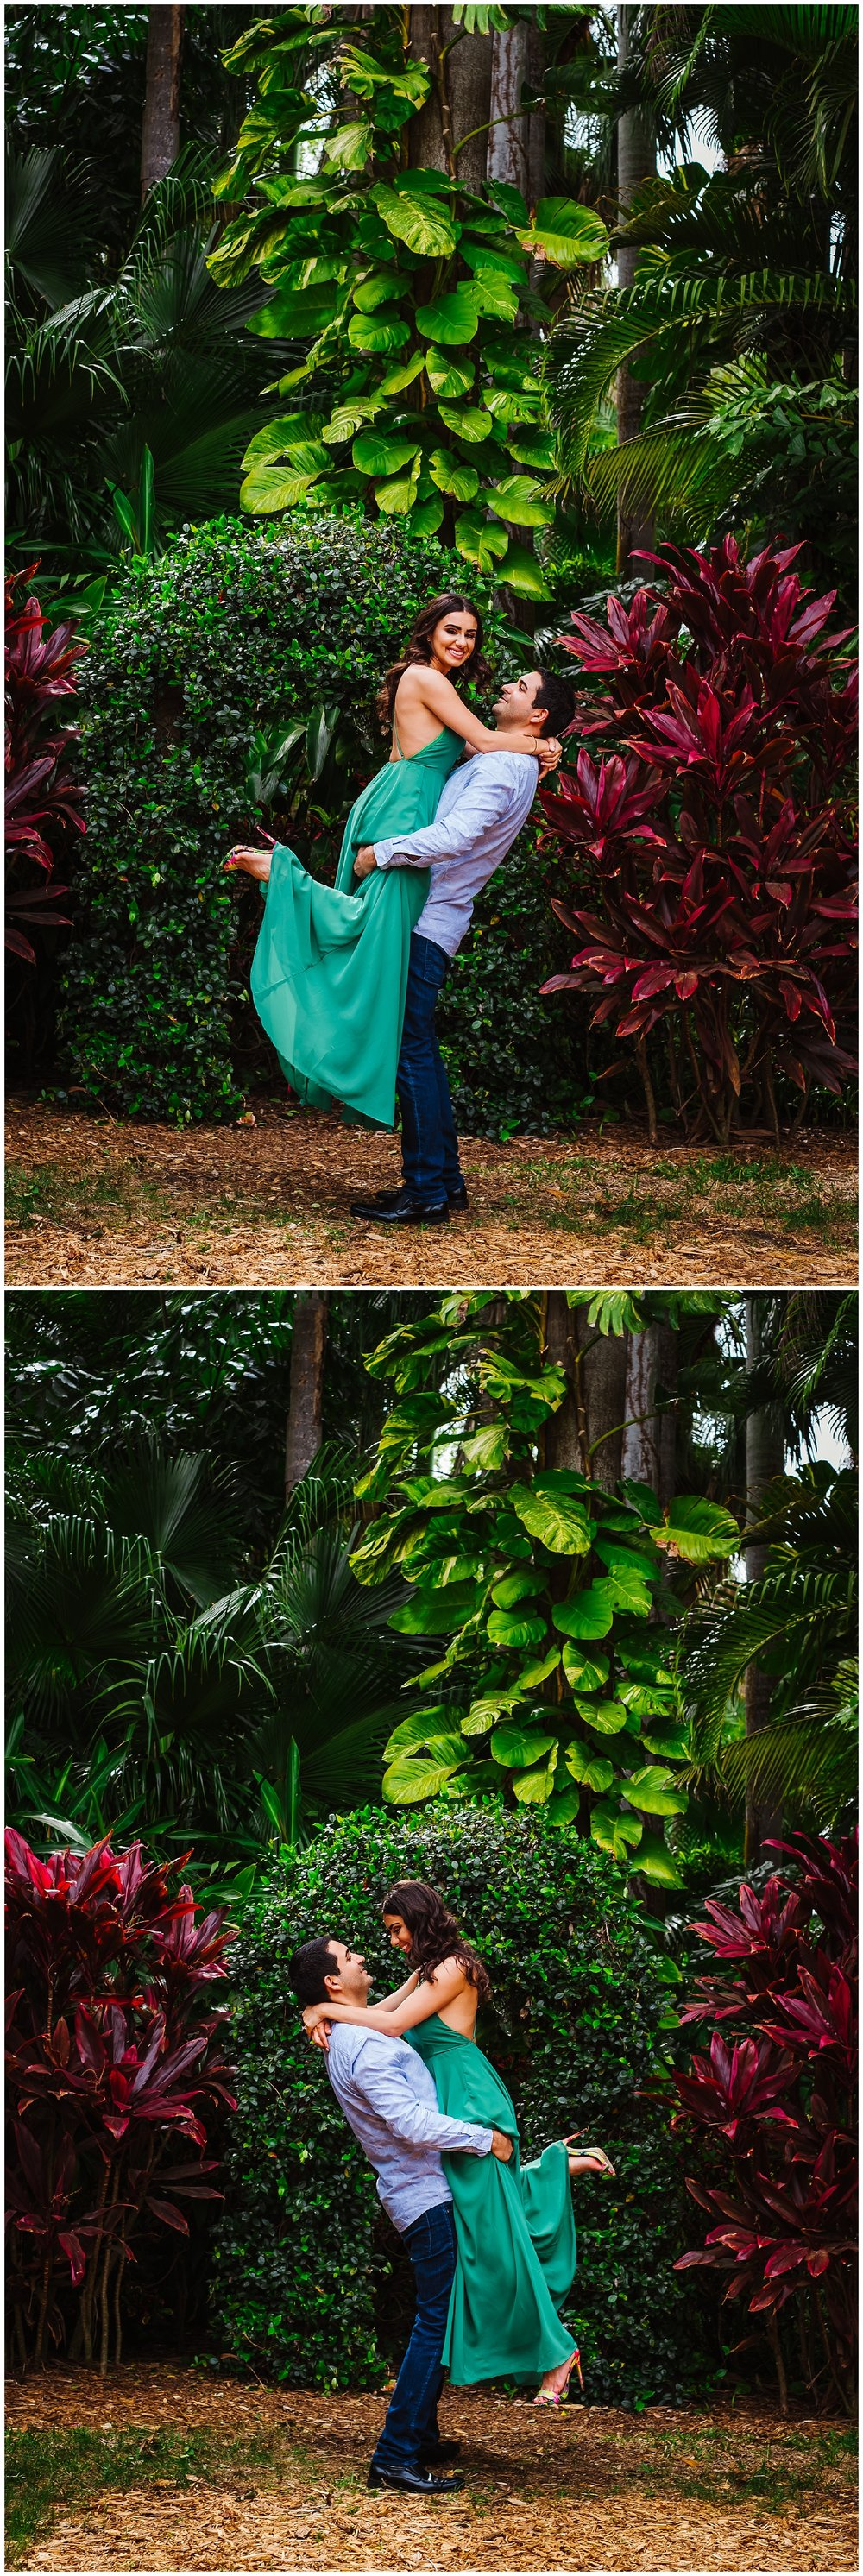 sunken-gardens-engagement-session-photos-teal-flamingos_0012.jpg